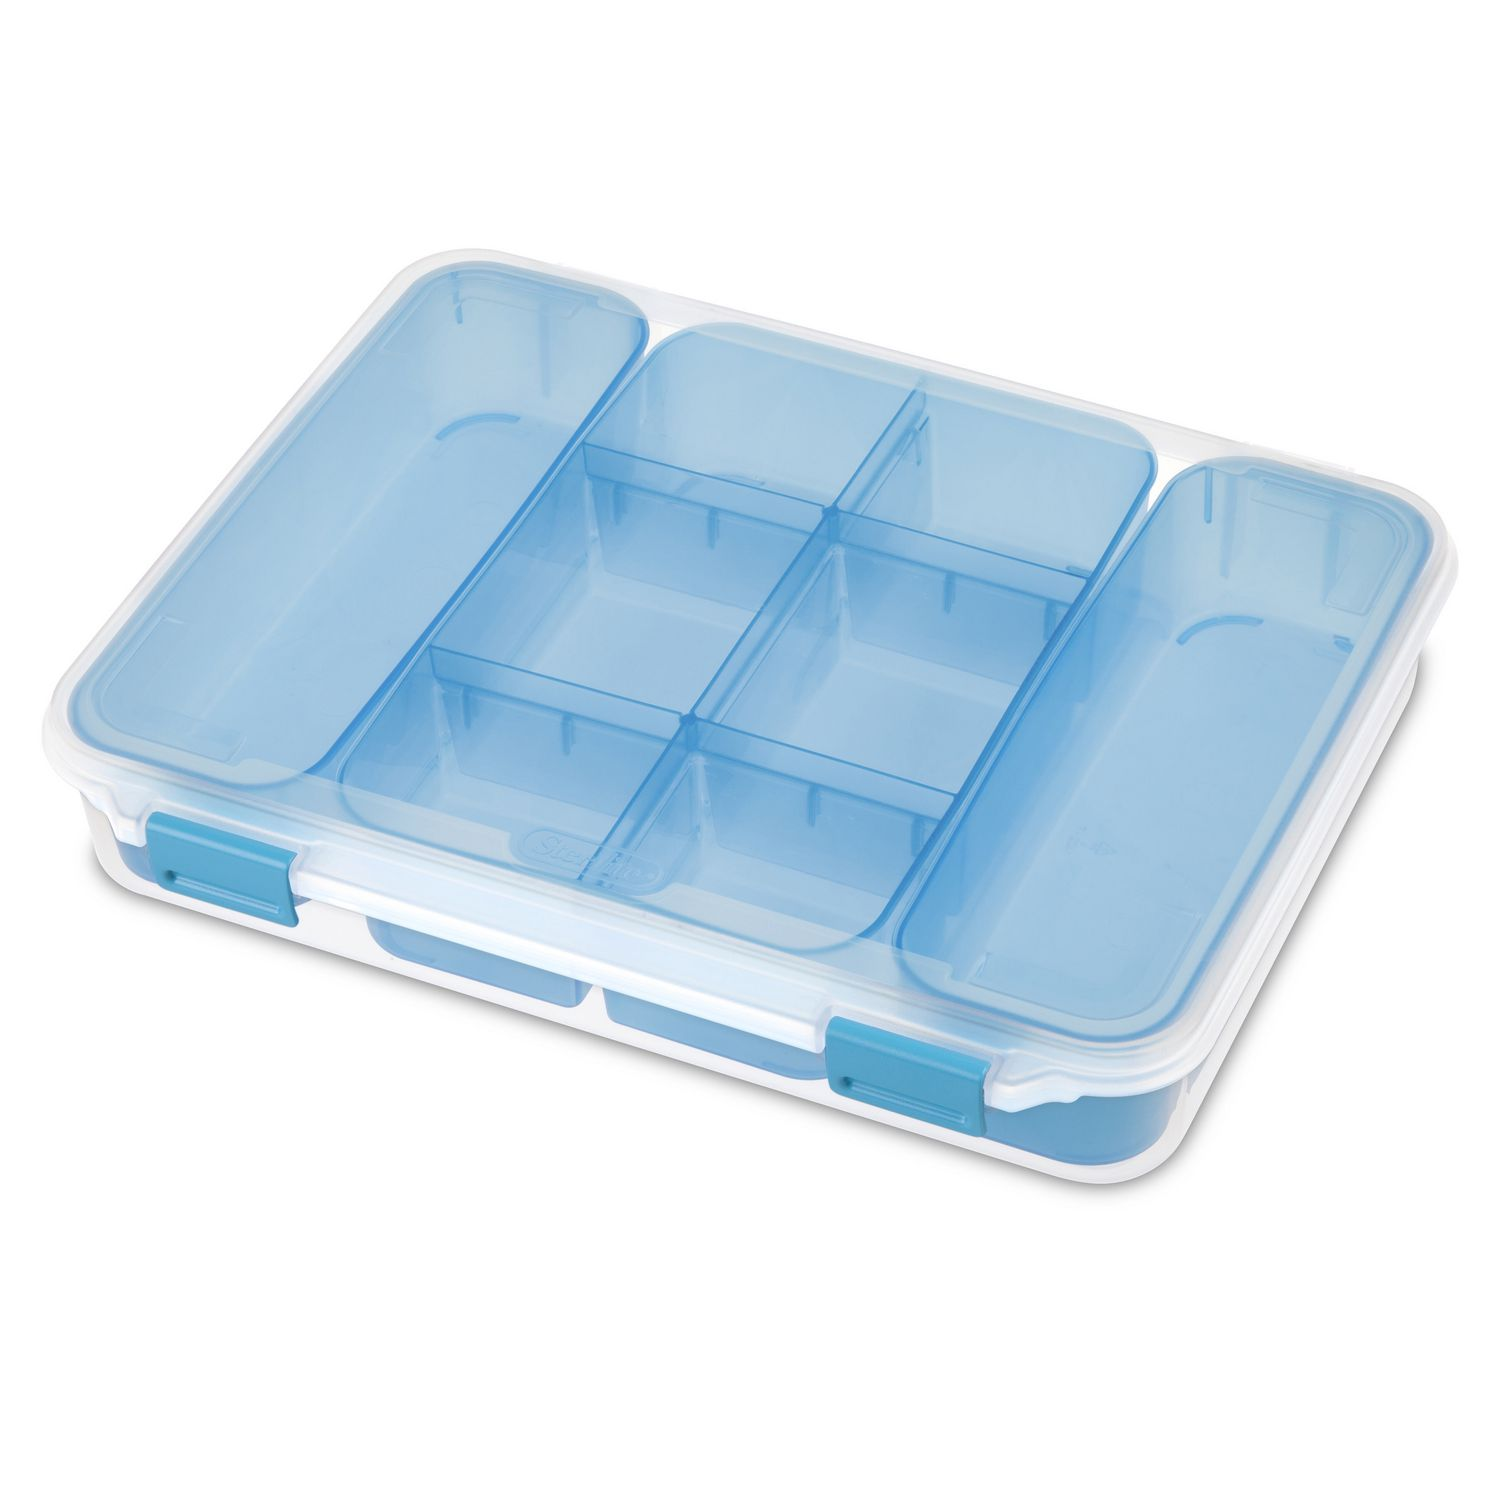 What are some retailers that sell Sterilite containers?